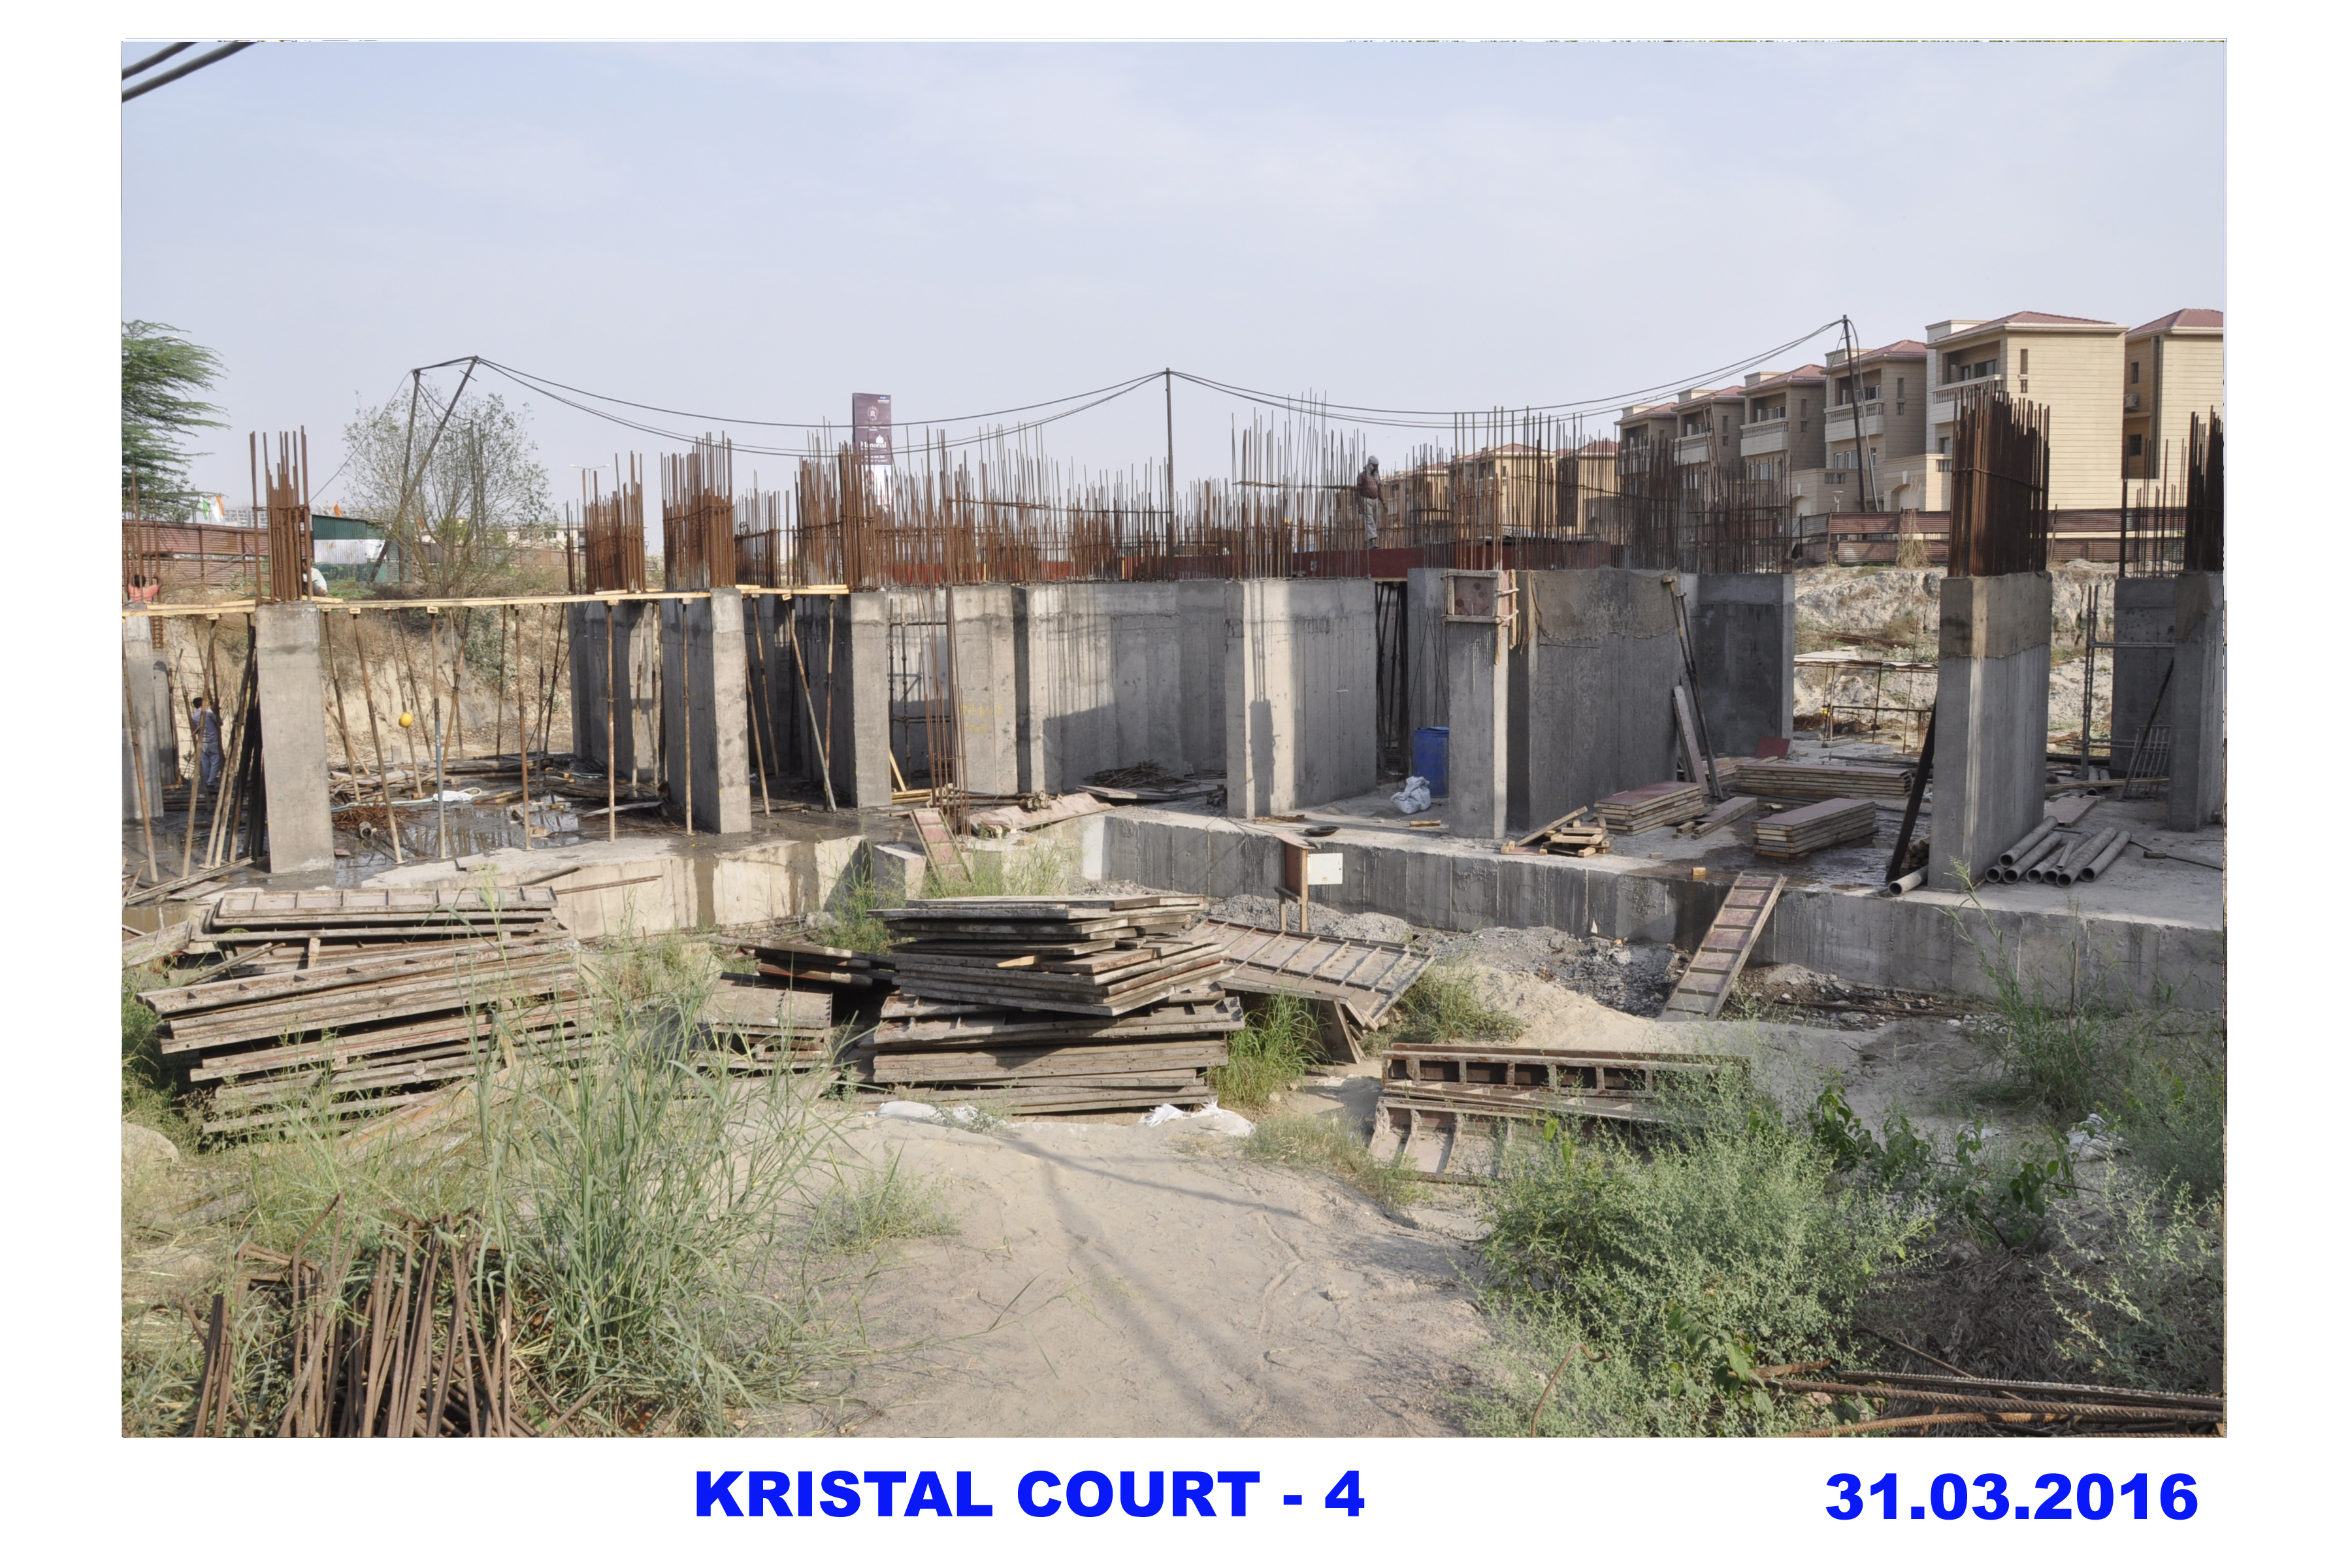 Kristal Court Tower - 4